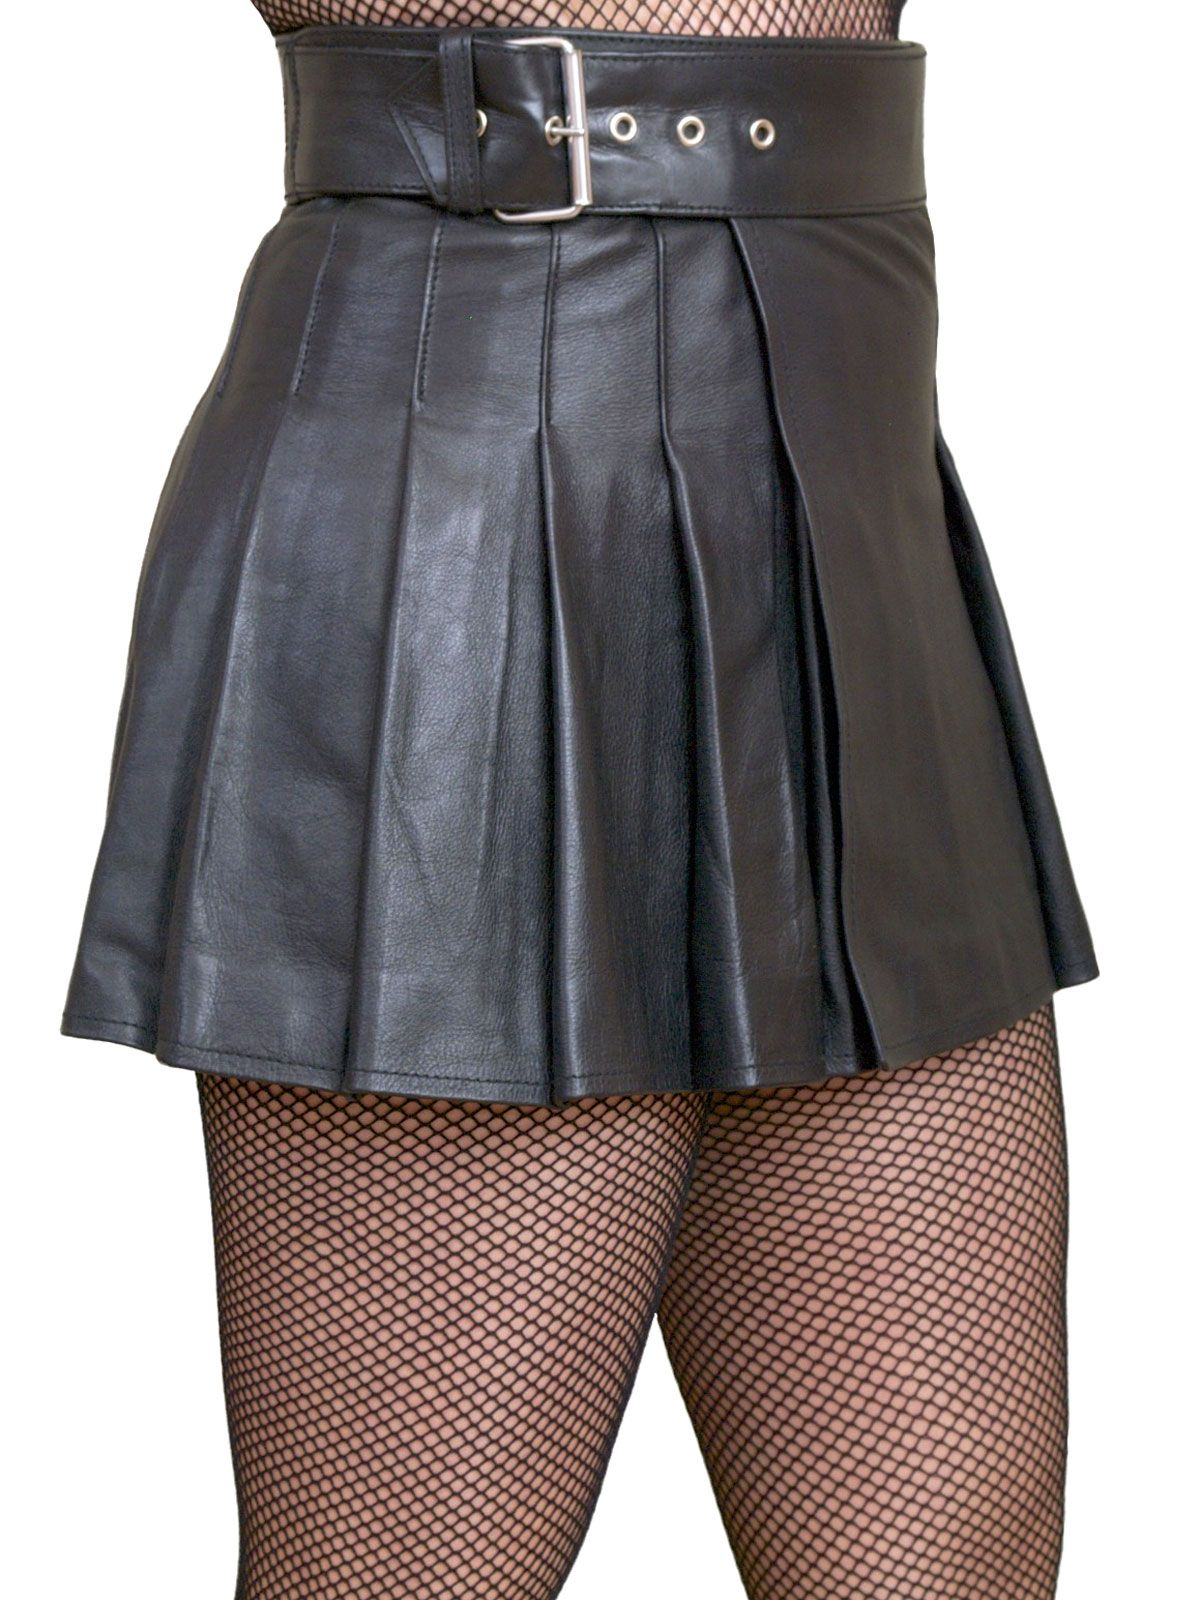 Guys it is on a chick but you can wear this easily and a lot ...